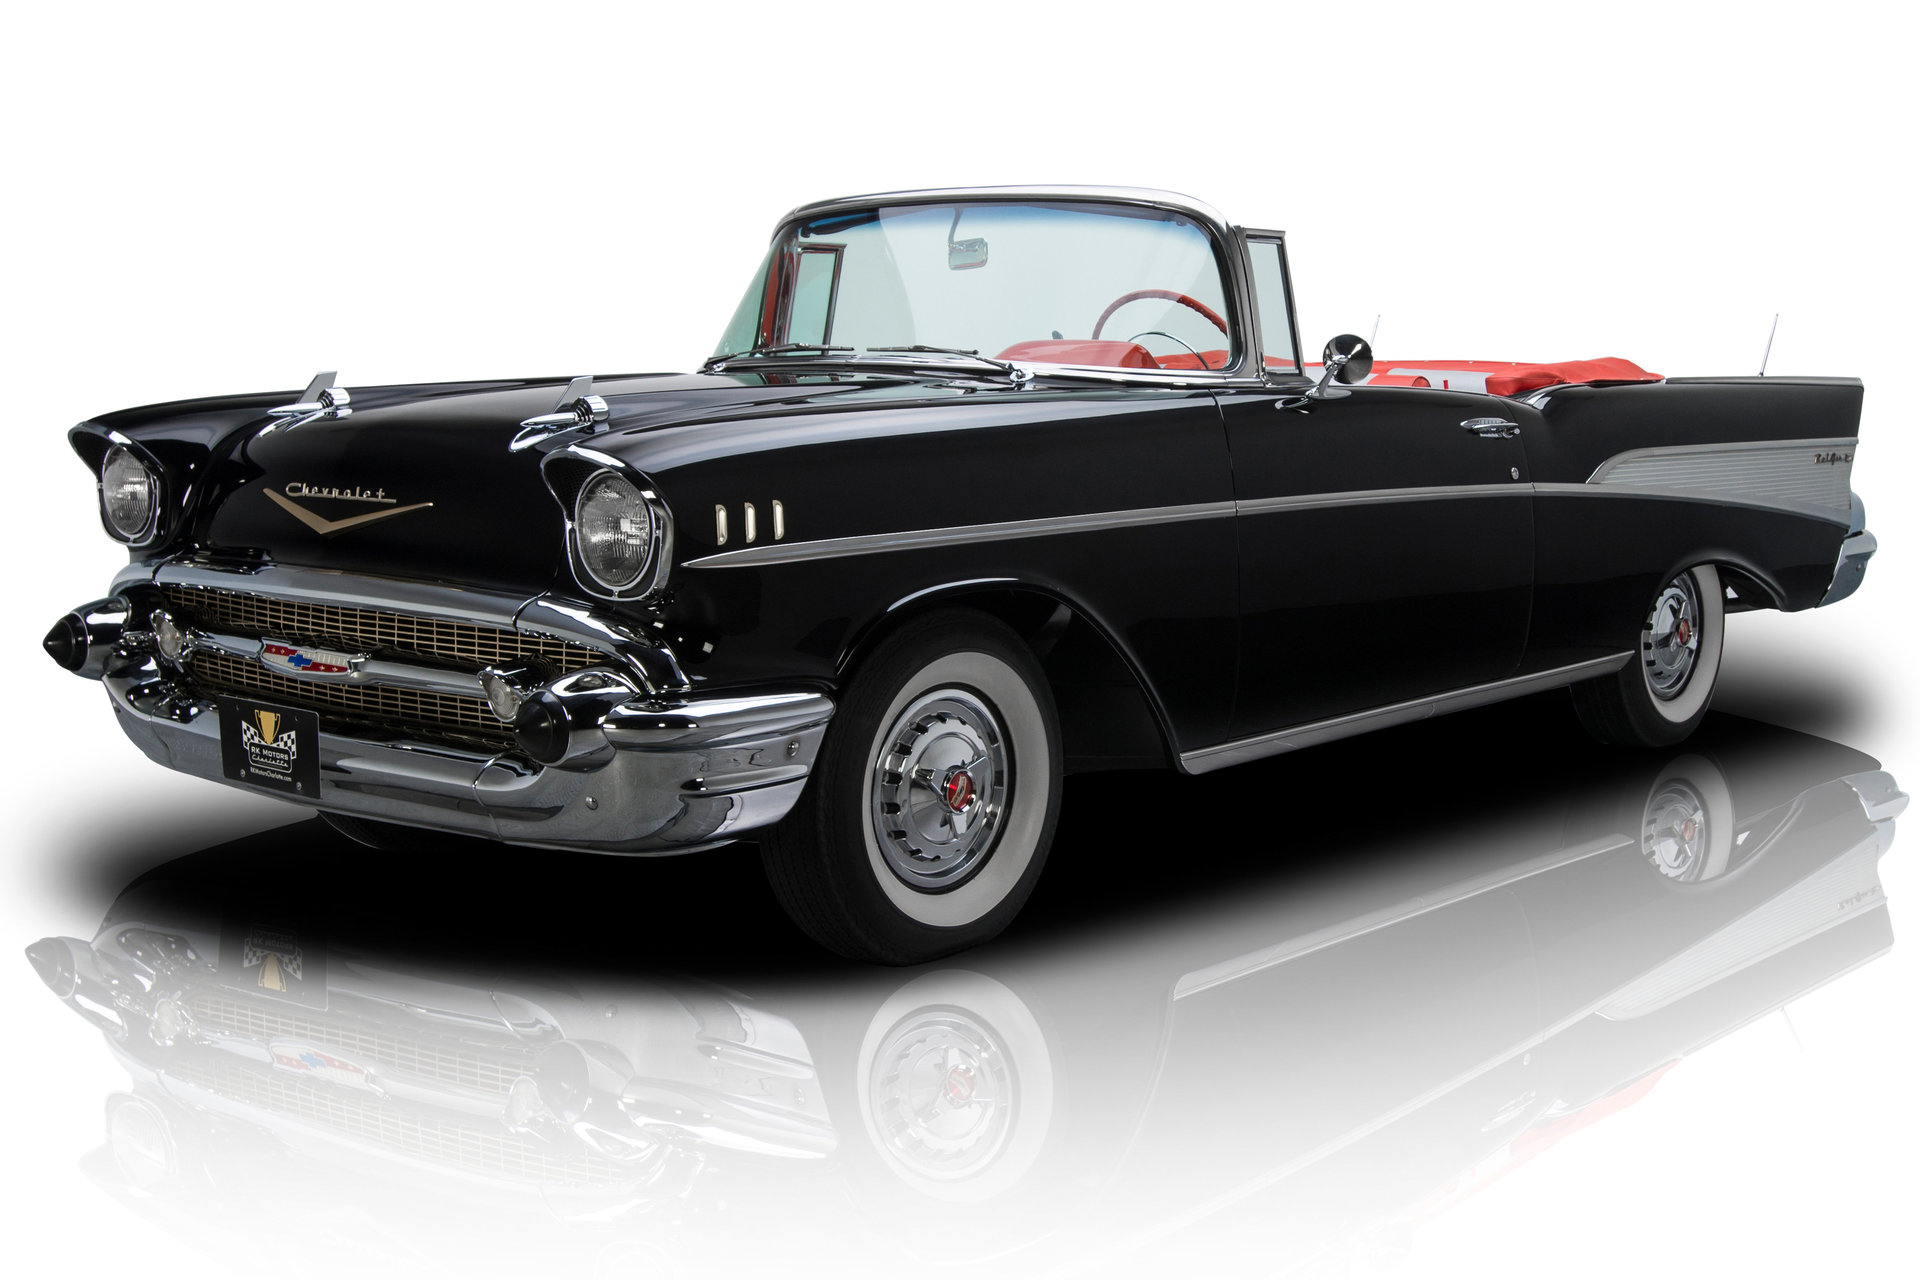 135736 1957 Chevrolet Bel Air Rk Motors Classic Cars For Sale Chevy Front Suspension Body Off Restored Convertible 283 220 Hp V8 Powerglide Ps Fender Skirts